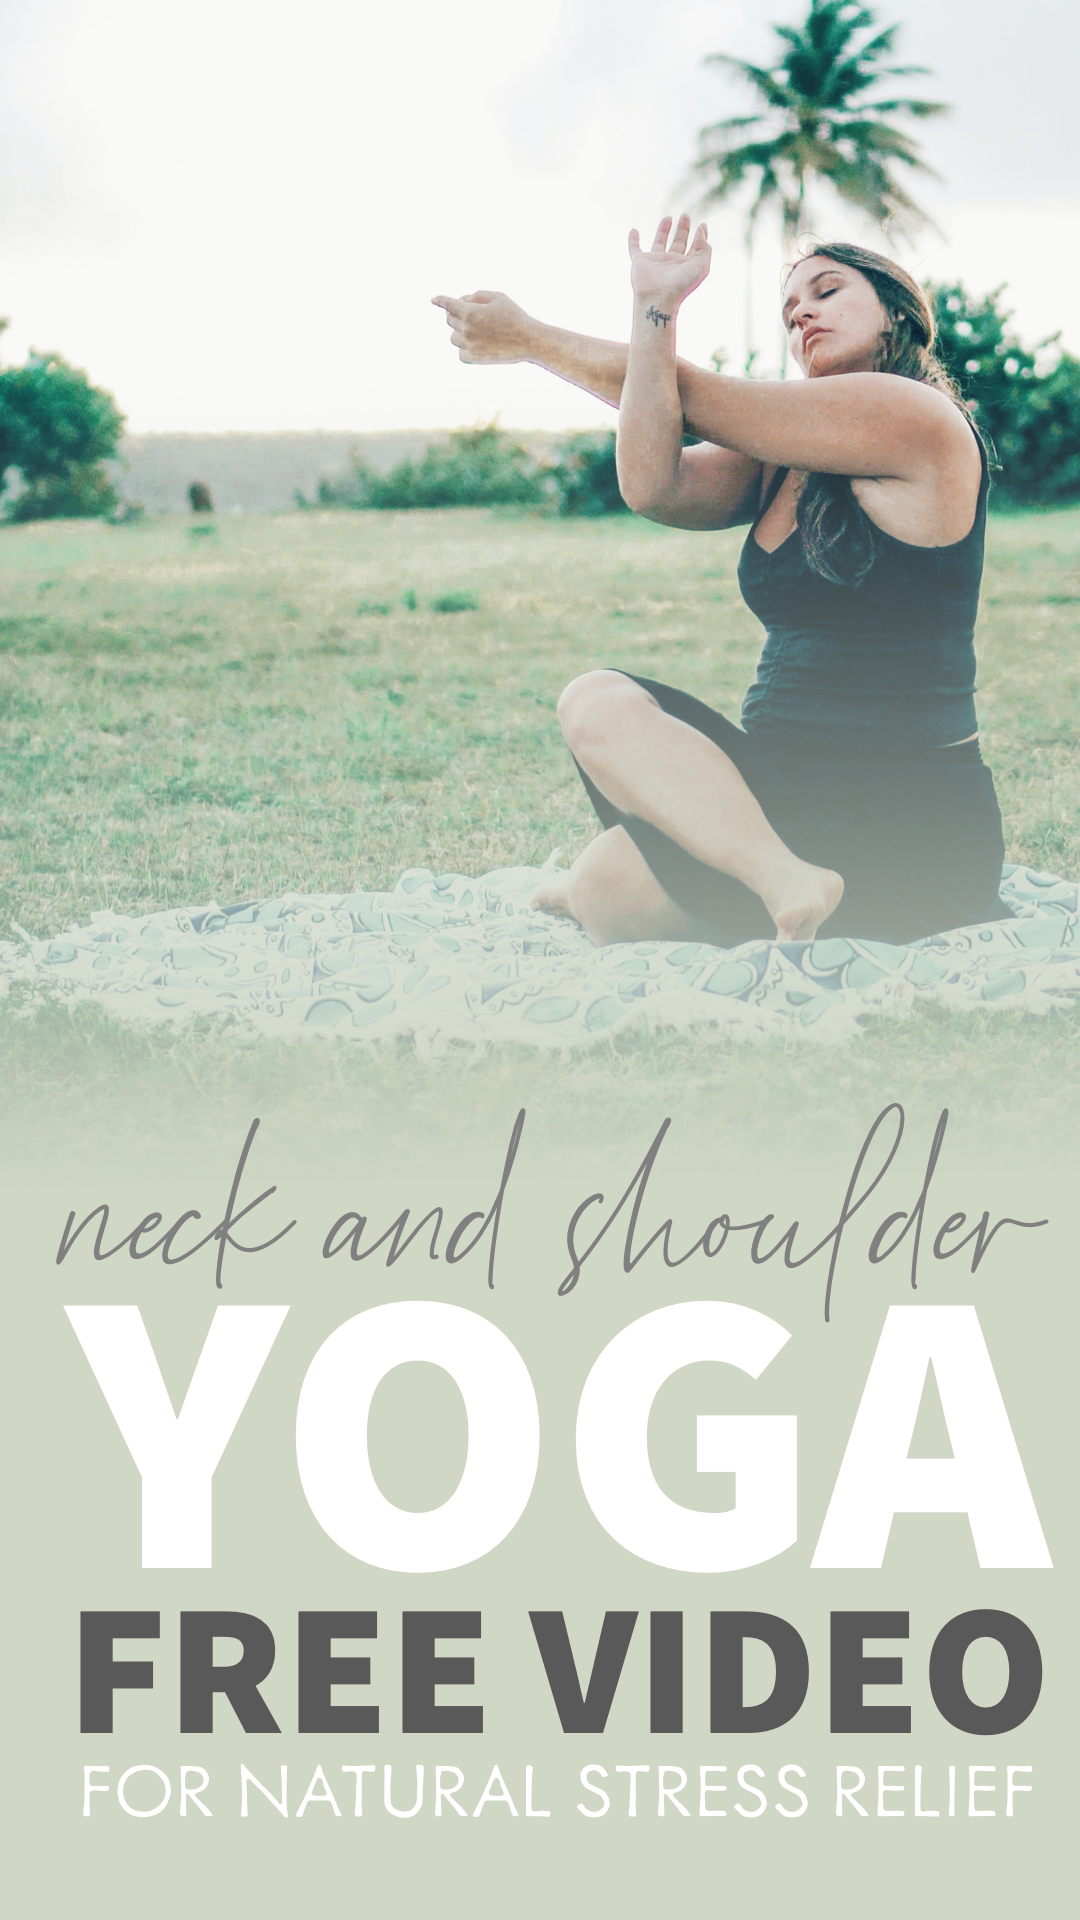 FREE YOGA VIDEO |  Yoga for Neck and Shoulder Tension. Each posture is seated and can be done from t...